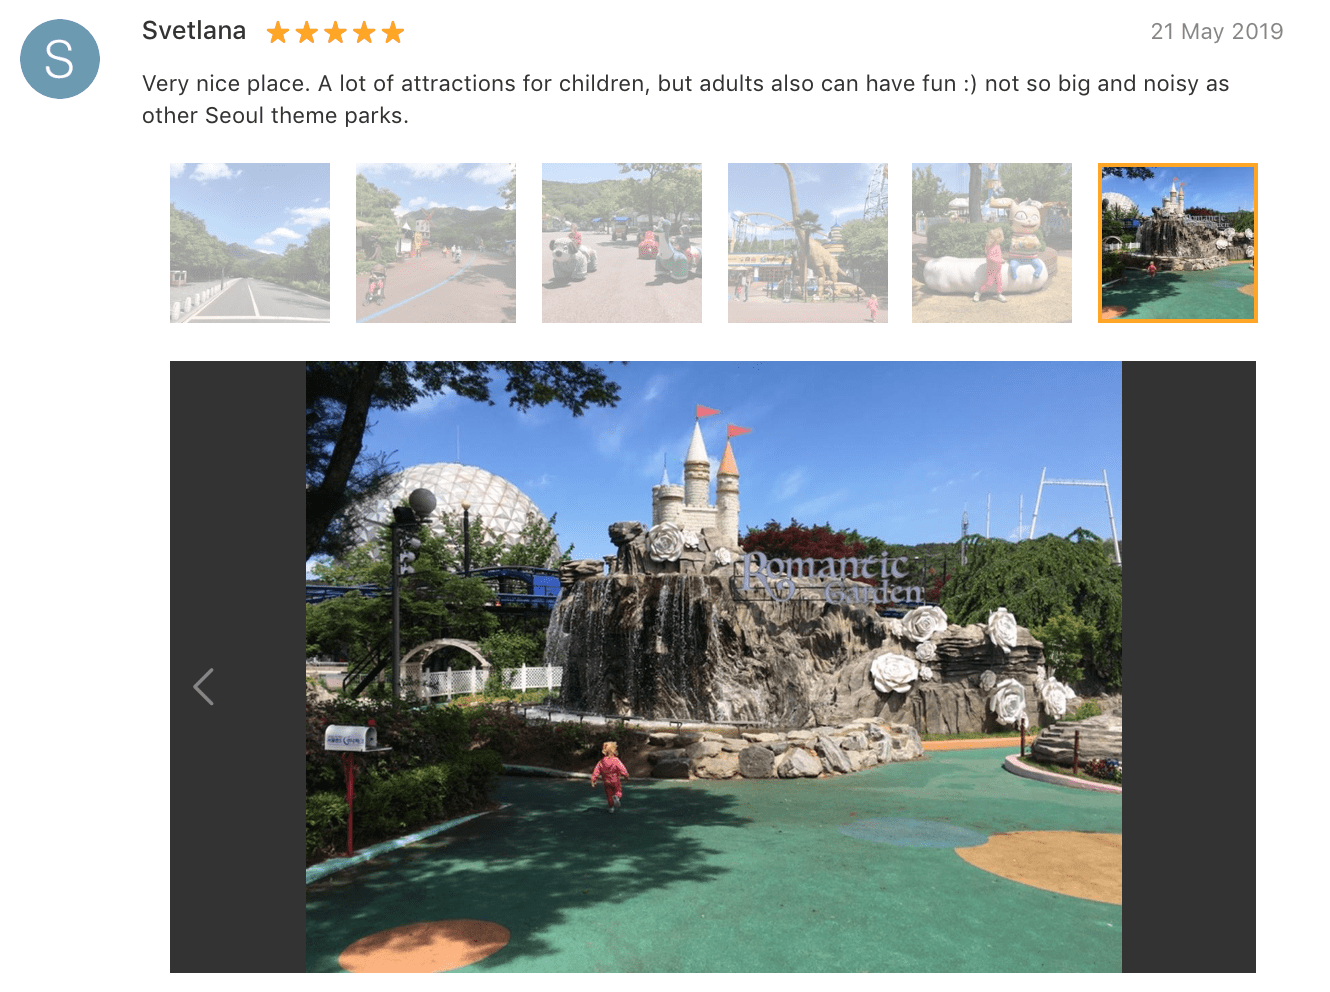 'Very nice place. A lot of attractions for children, but adults also can have fun :) not so big and noisy as other Seoul theme parks.' - Seoul Land Review: Klook